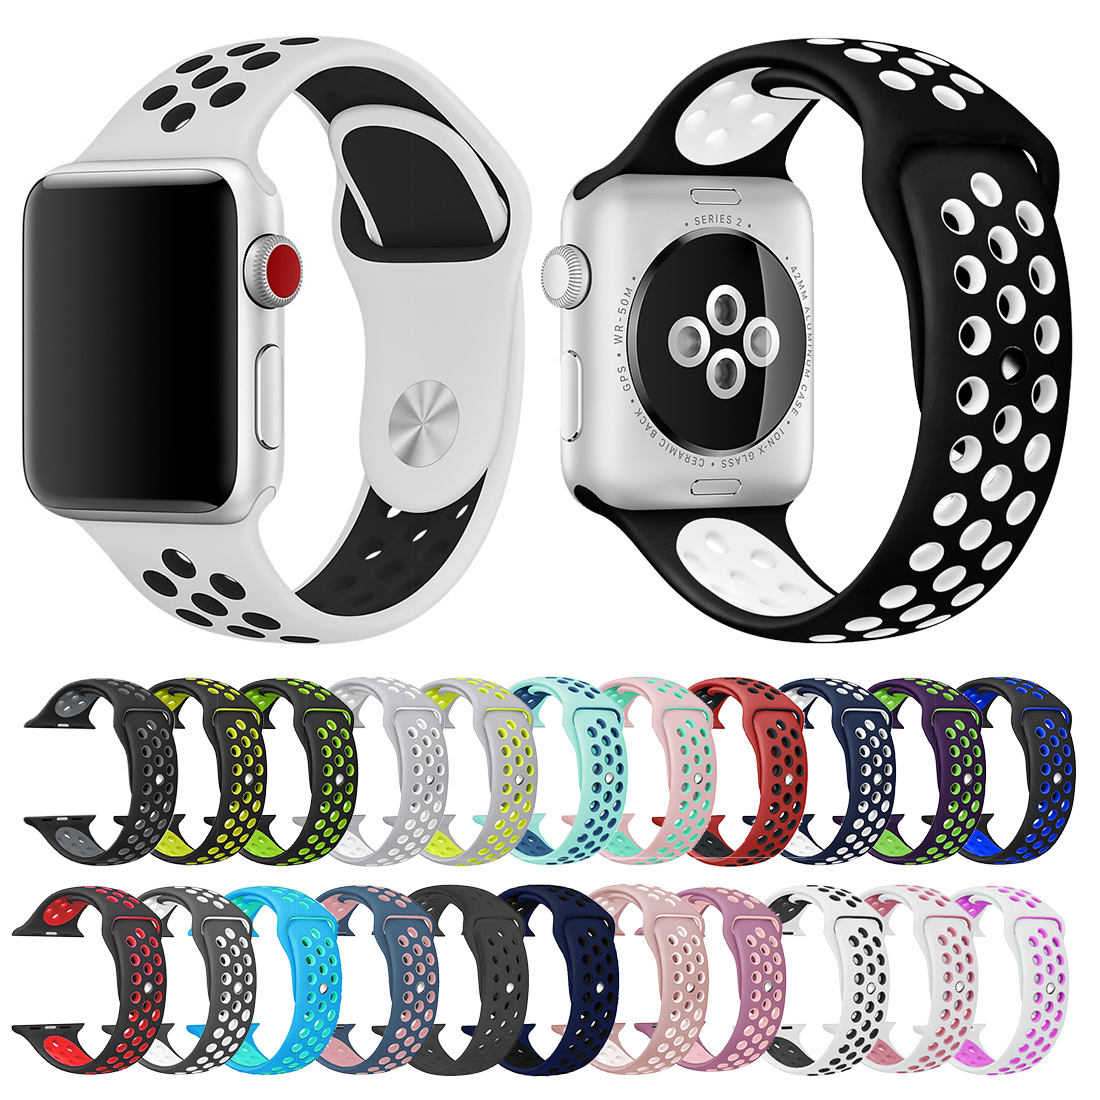 Soft Silicone Replacement Wristband for Apple Watch Series 1 2 3 Breathable hole iwatch band 42mm iwatch watchband 38mm strap apple watch band 38mm 42mm secbolt metal replacement wristband sport strap for apple watch nike series 3 series 2 series 1